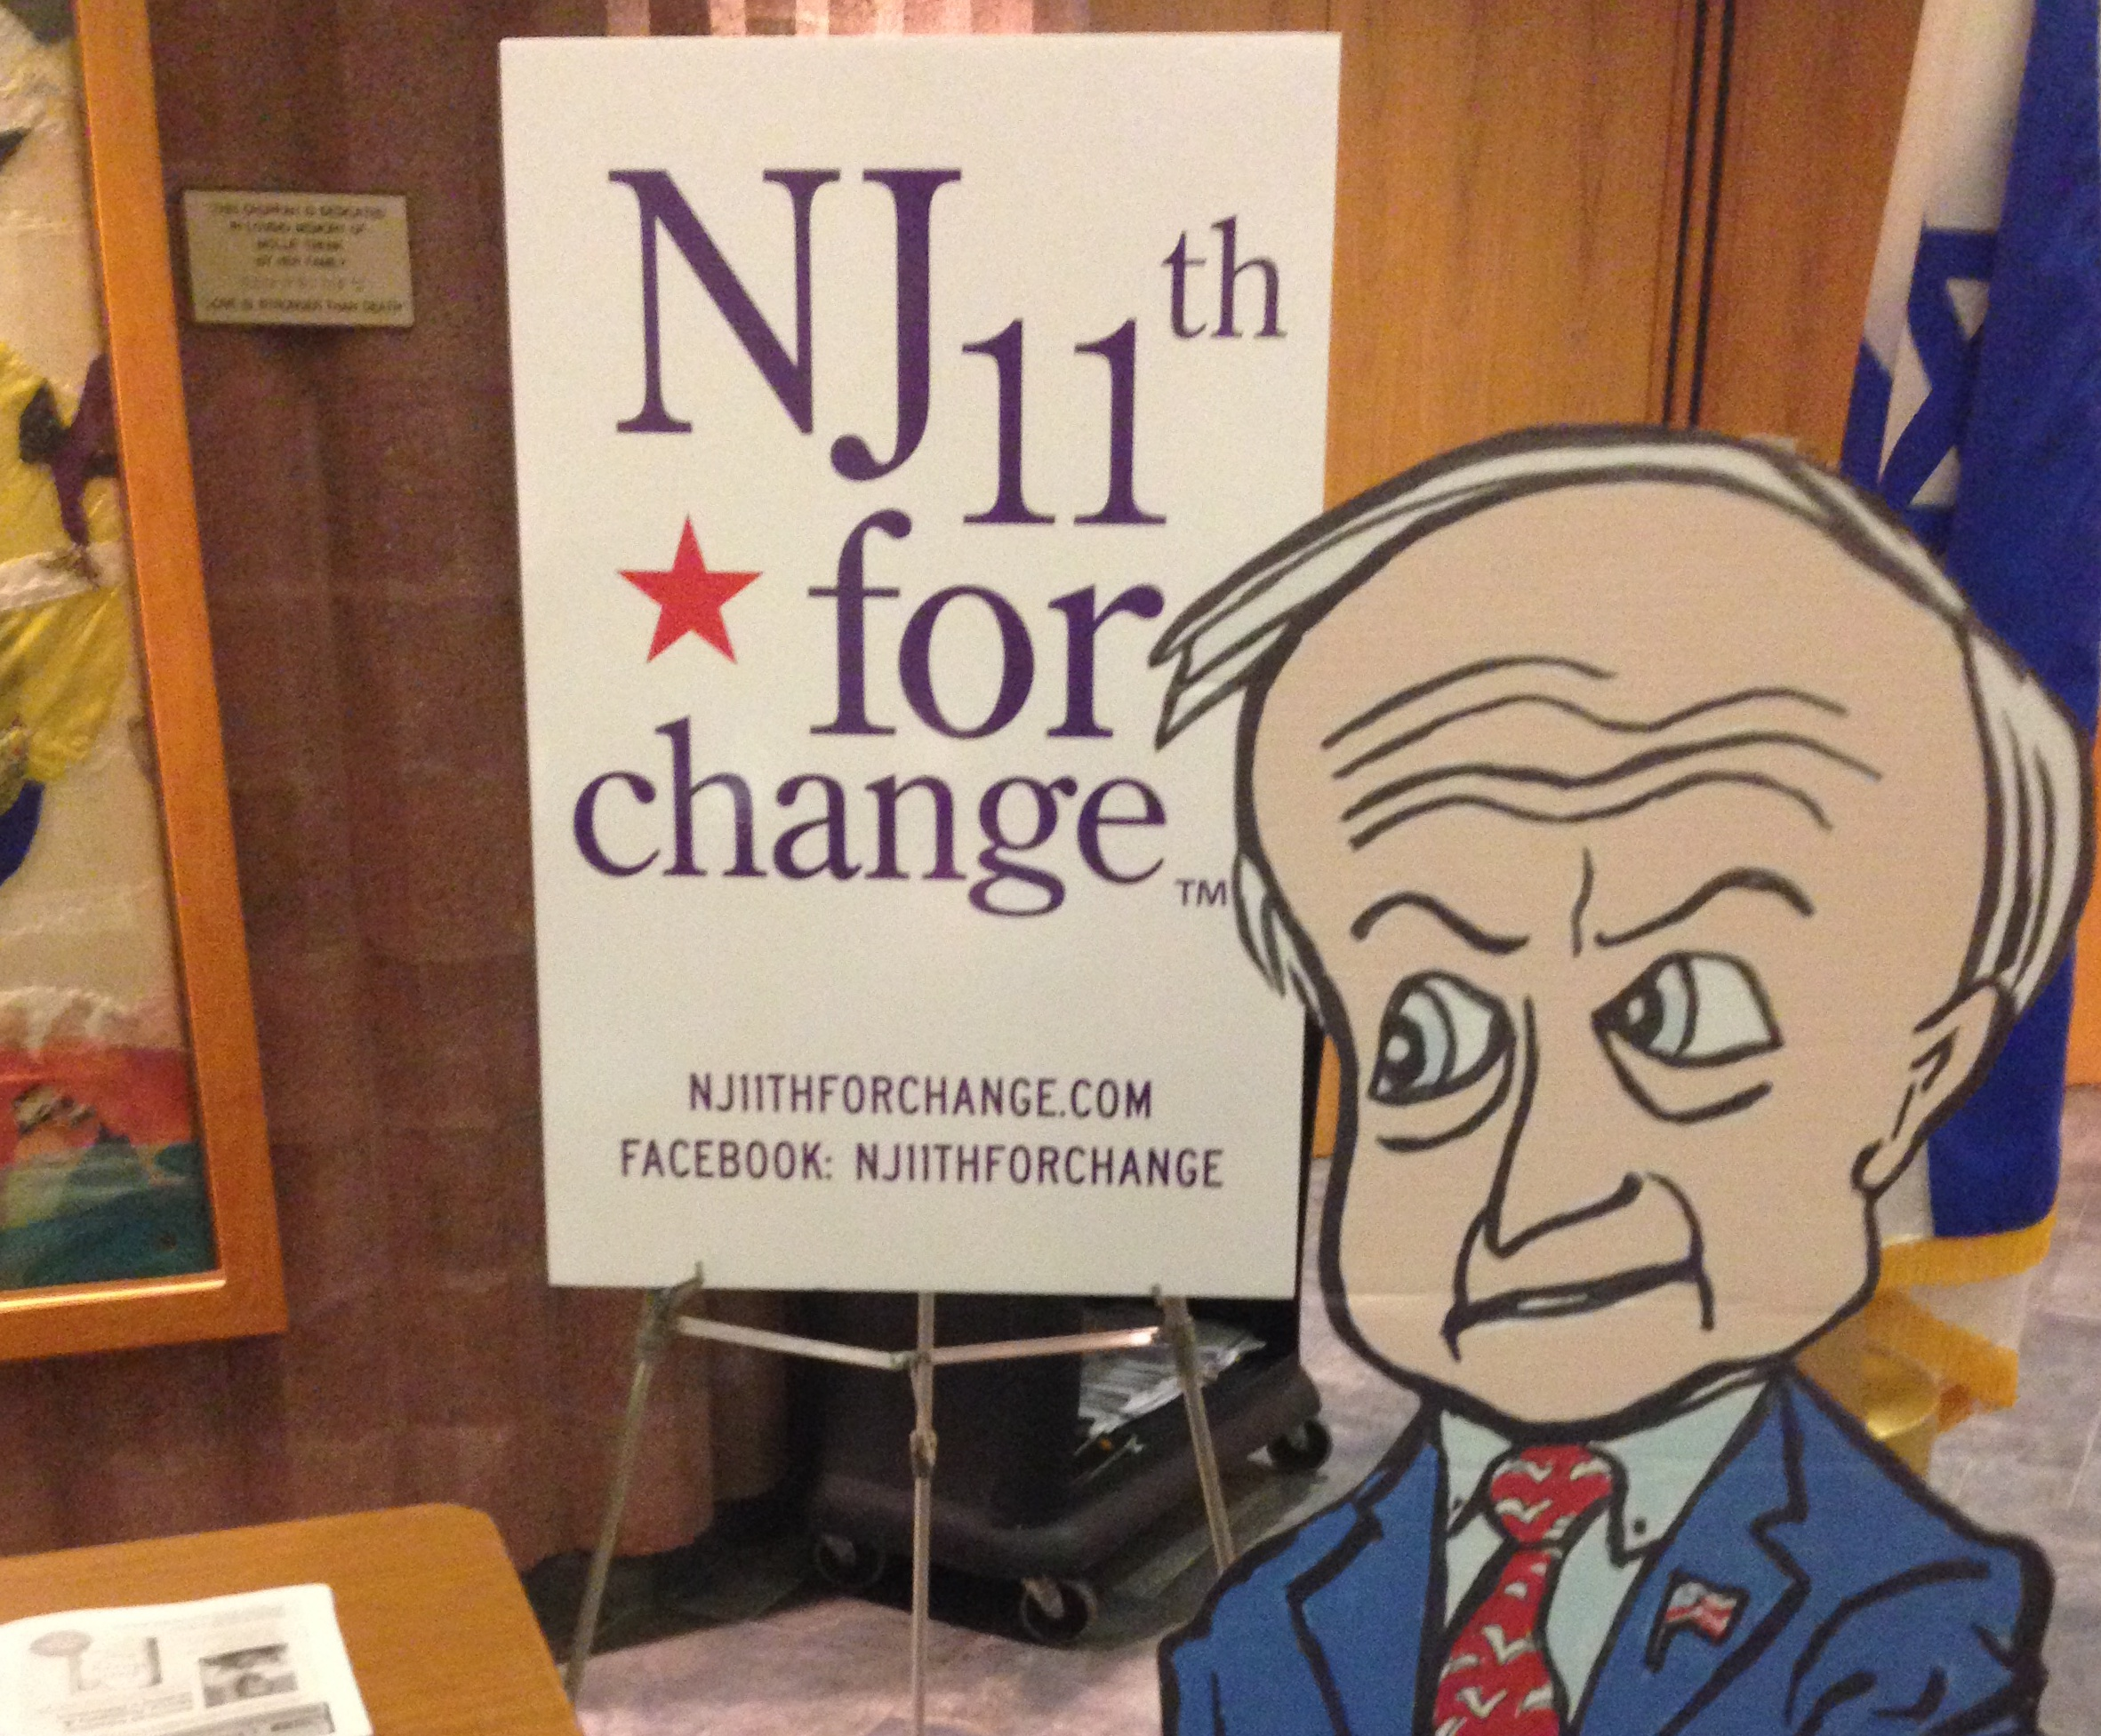 A cardboard cut out of Frelinghuysen stood in for the congressman at a town hall organized by NJ 11th for Change. (Simone Pathe/Roll Call)